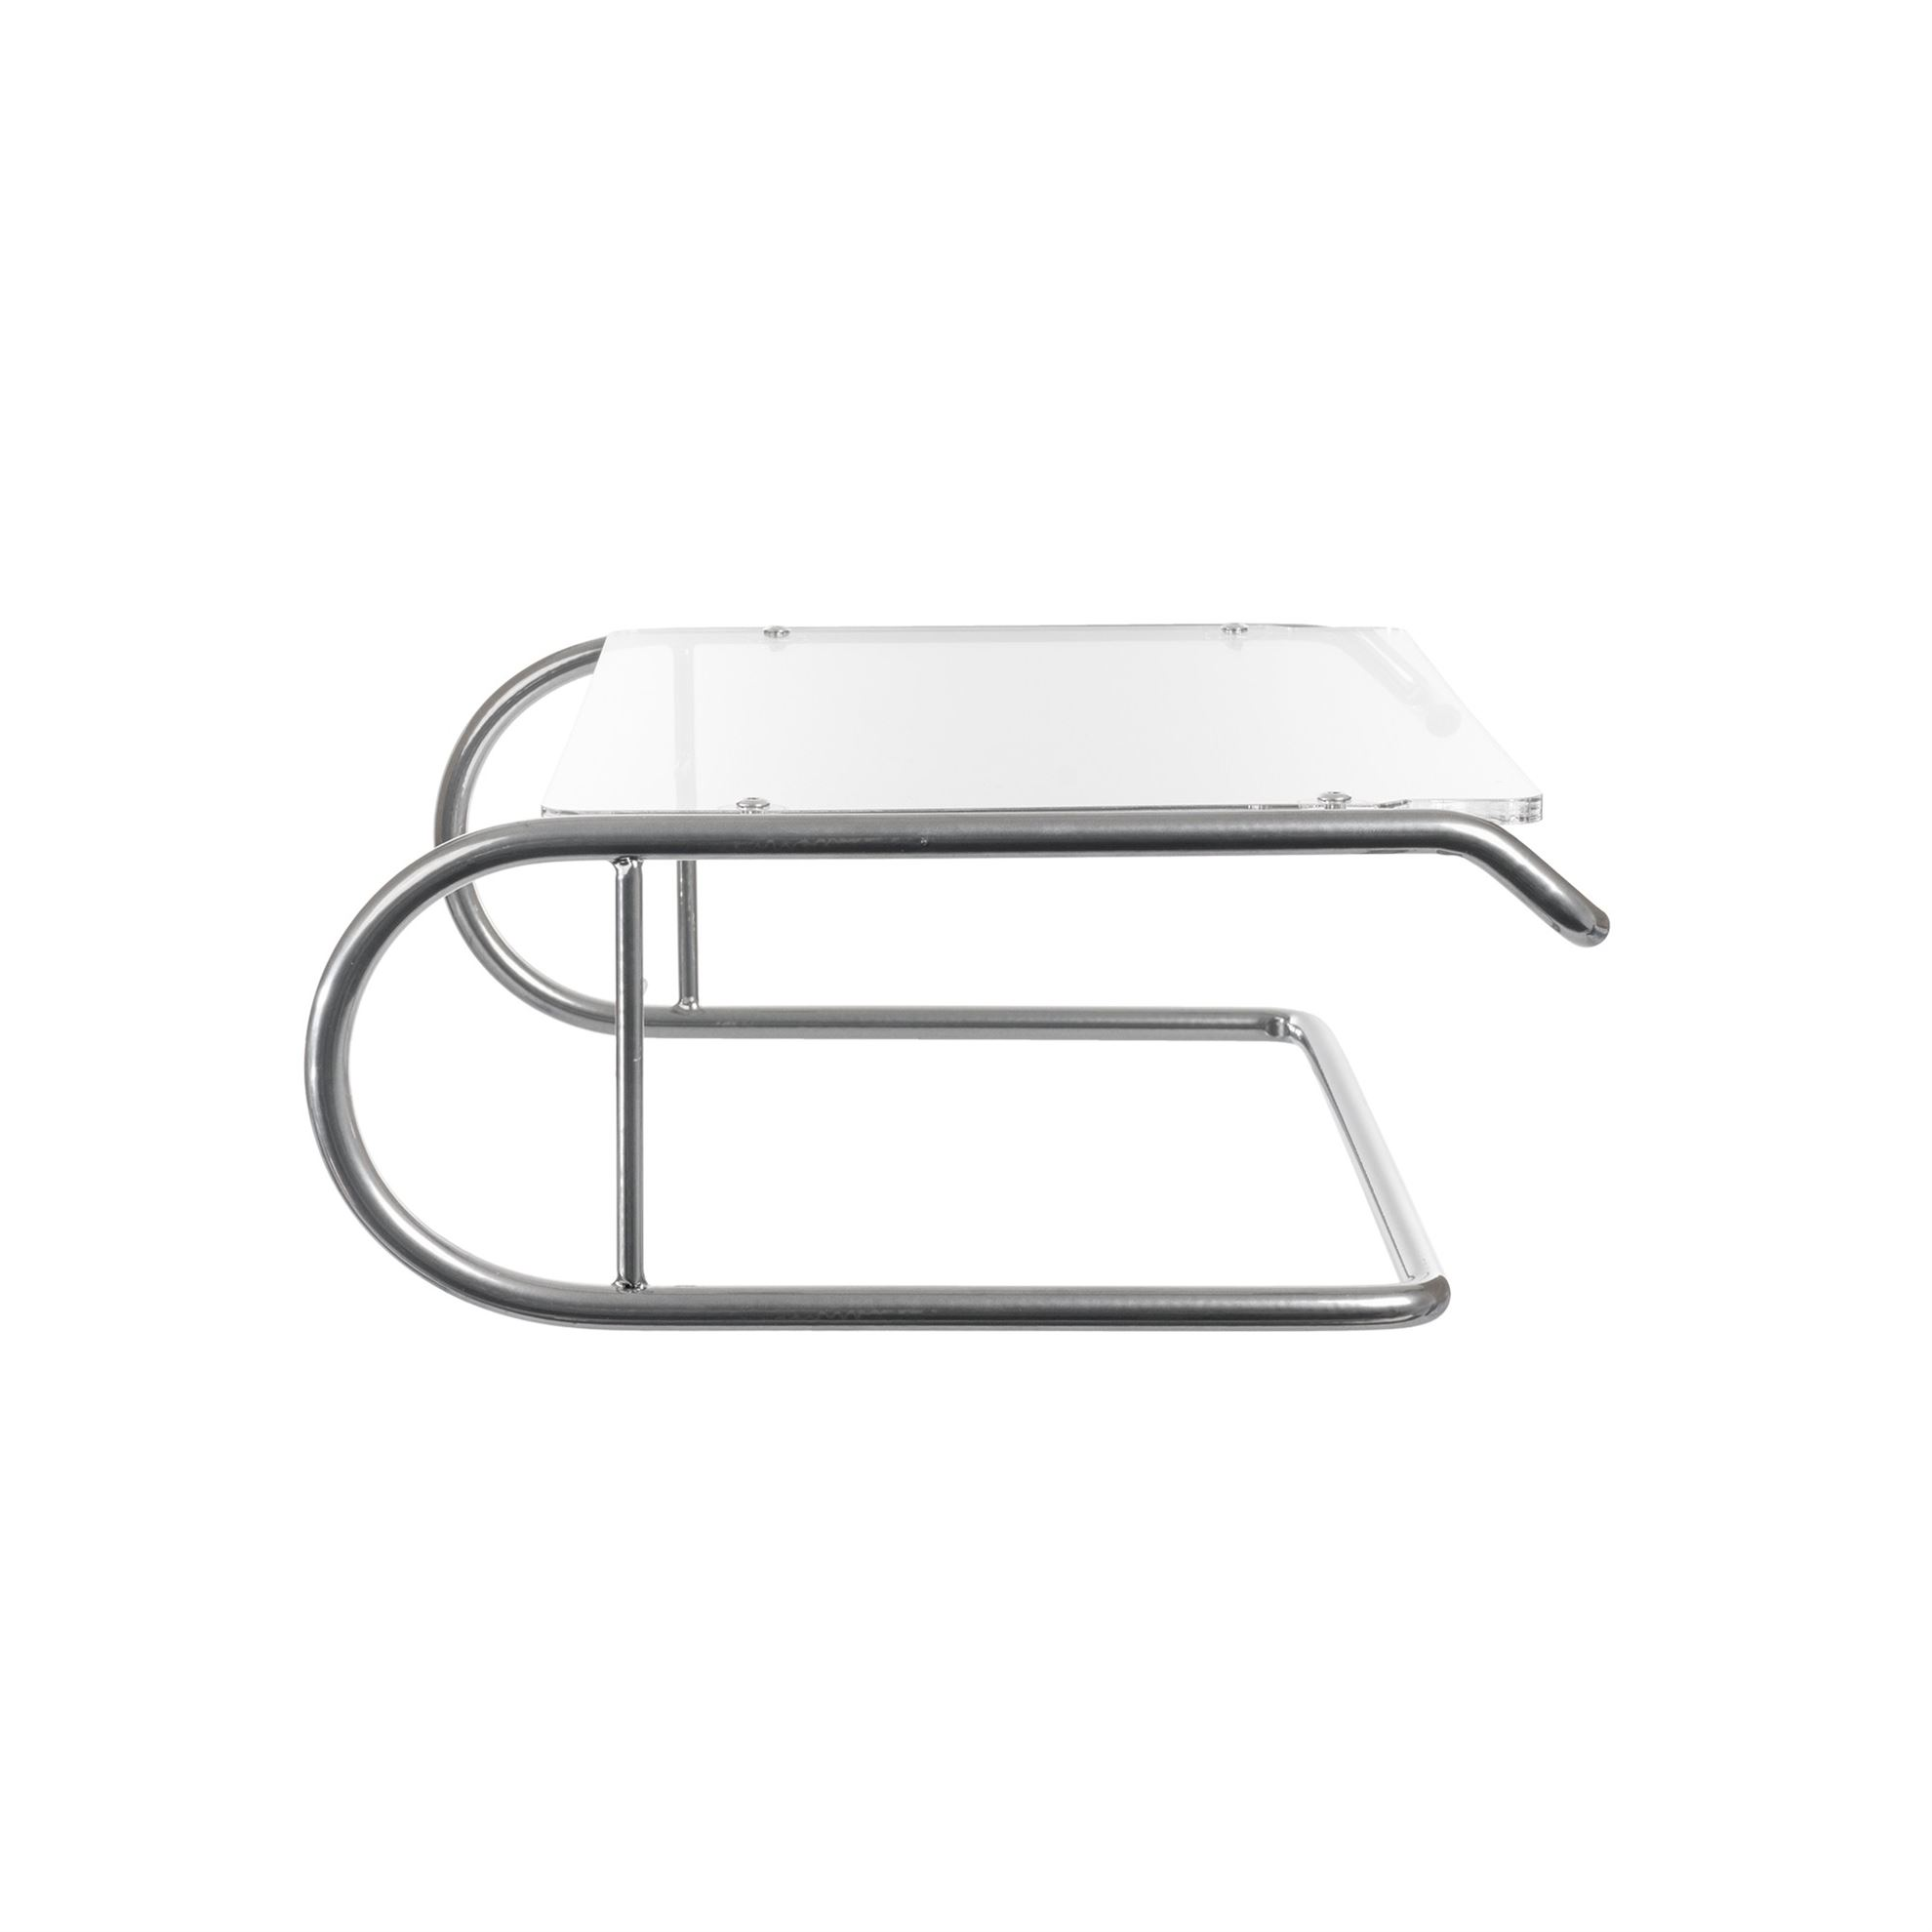 R-Go Steel Essential Monitor Stand, silver - 3